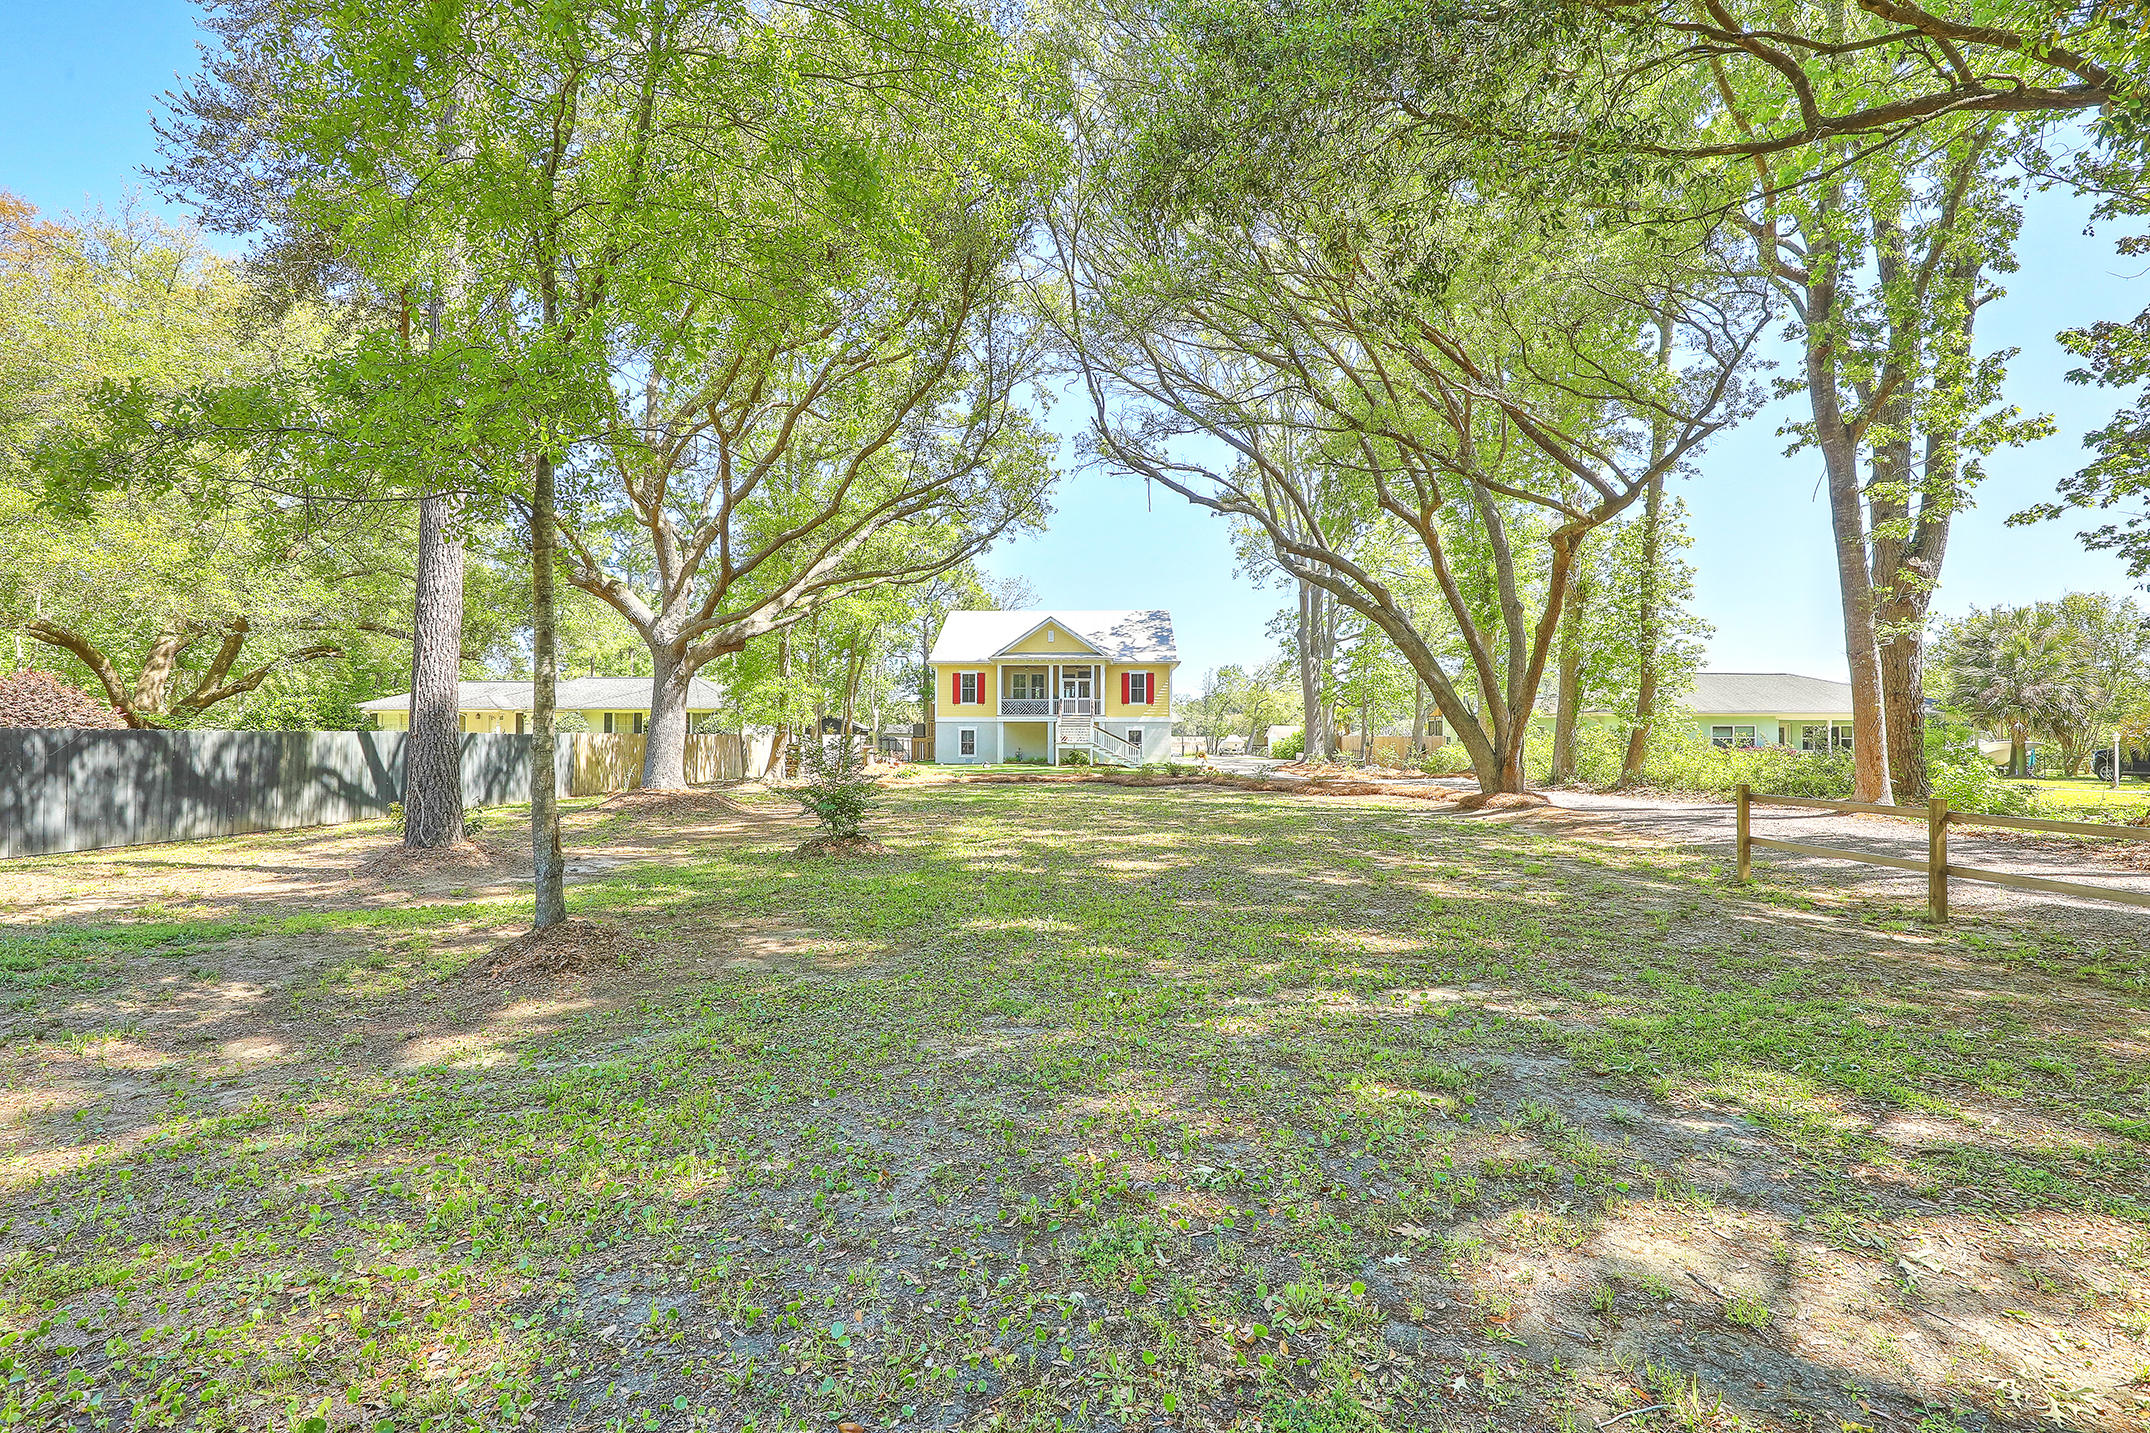 Photo of 1193 River Rd, Johns Island, SC 29455